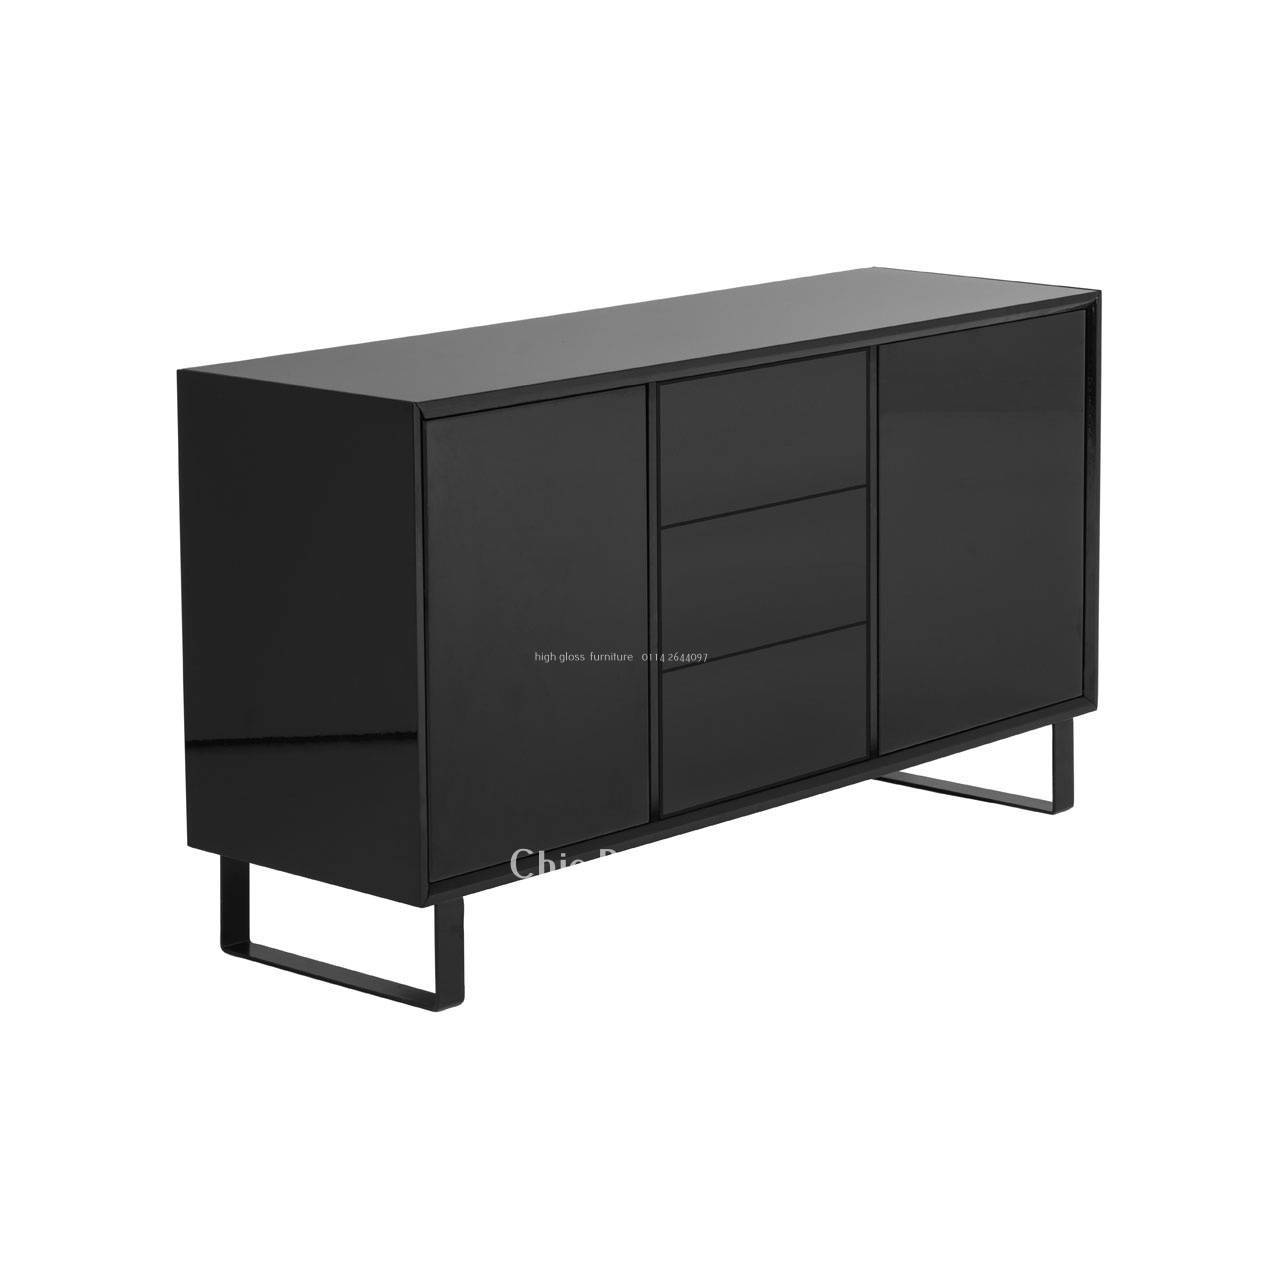 Furniture: Black Modern Sideboard With 3 Drawers And 2 Doors For Pertaining To Black High Gloss Sideboards (#9 of 20)